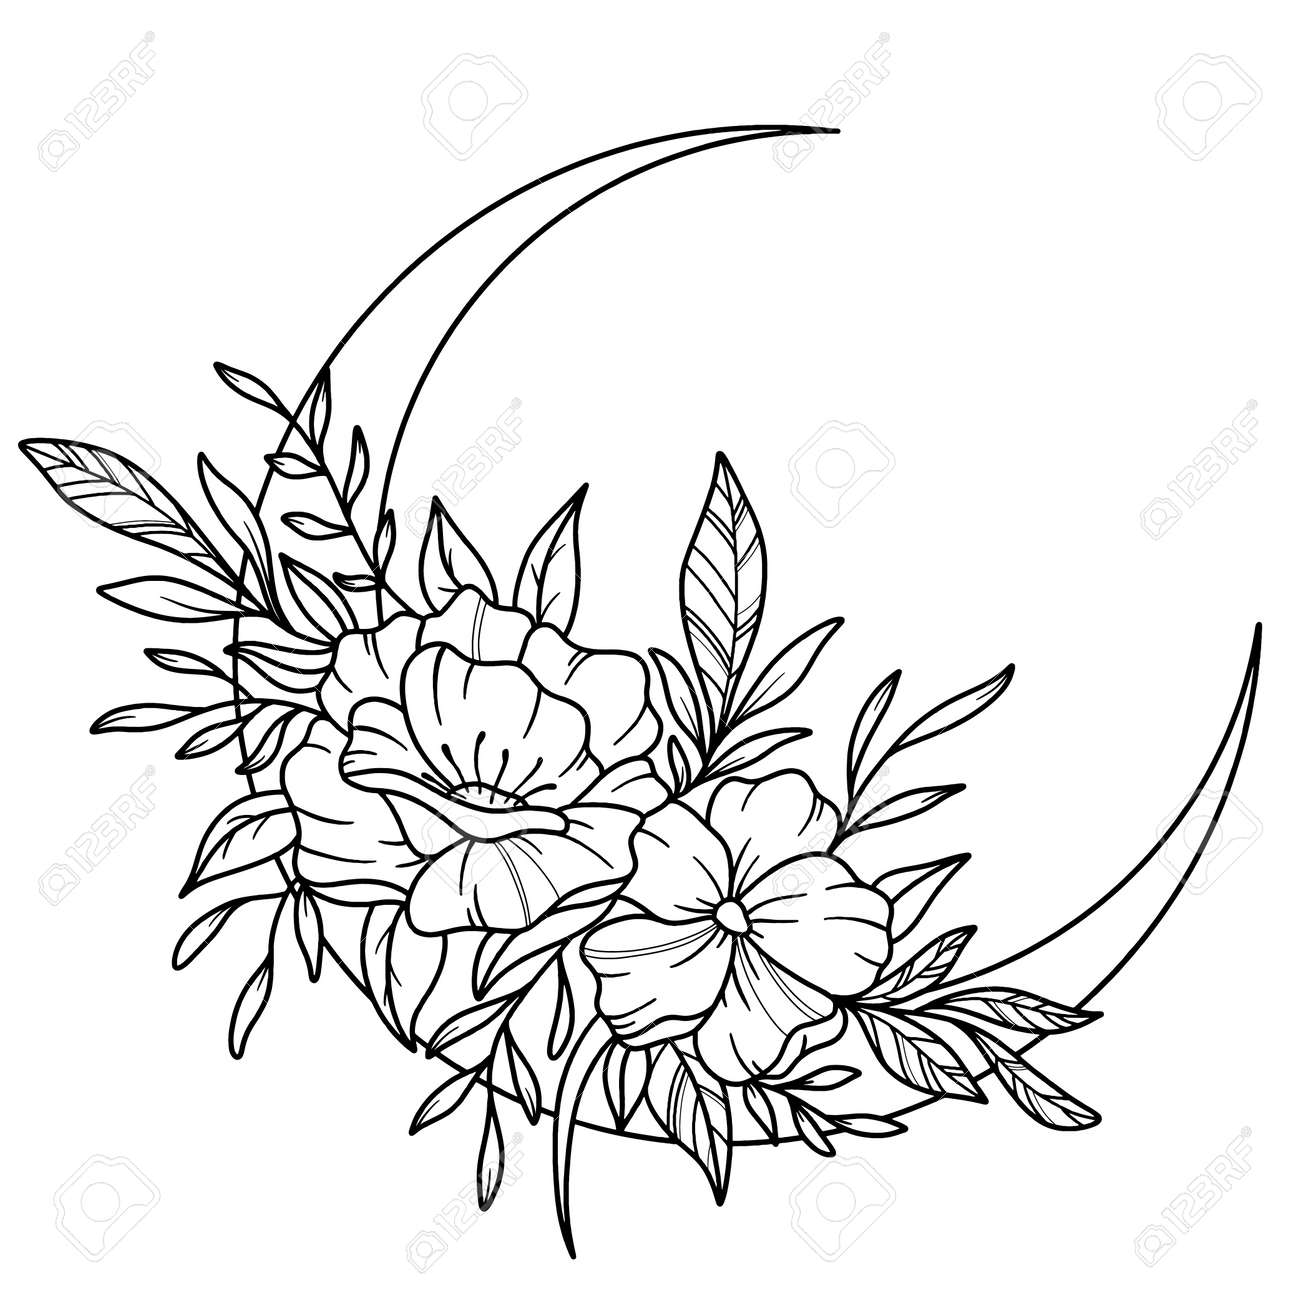 Beautiful flowers and leaves decorated crescent moon on white background - 165868527